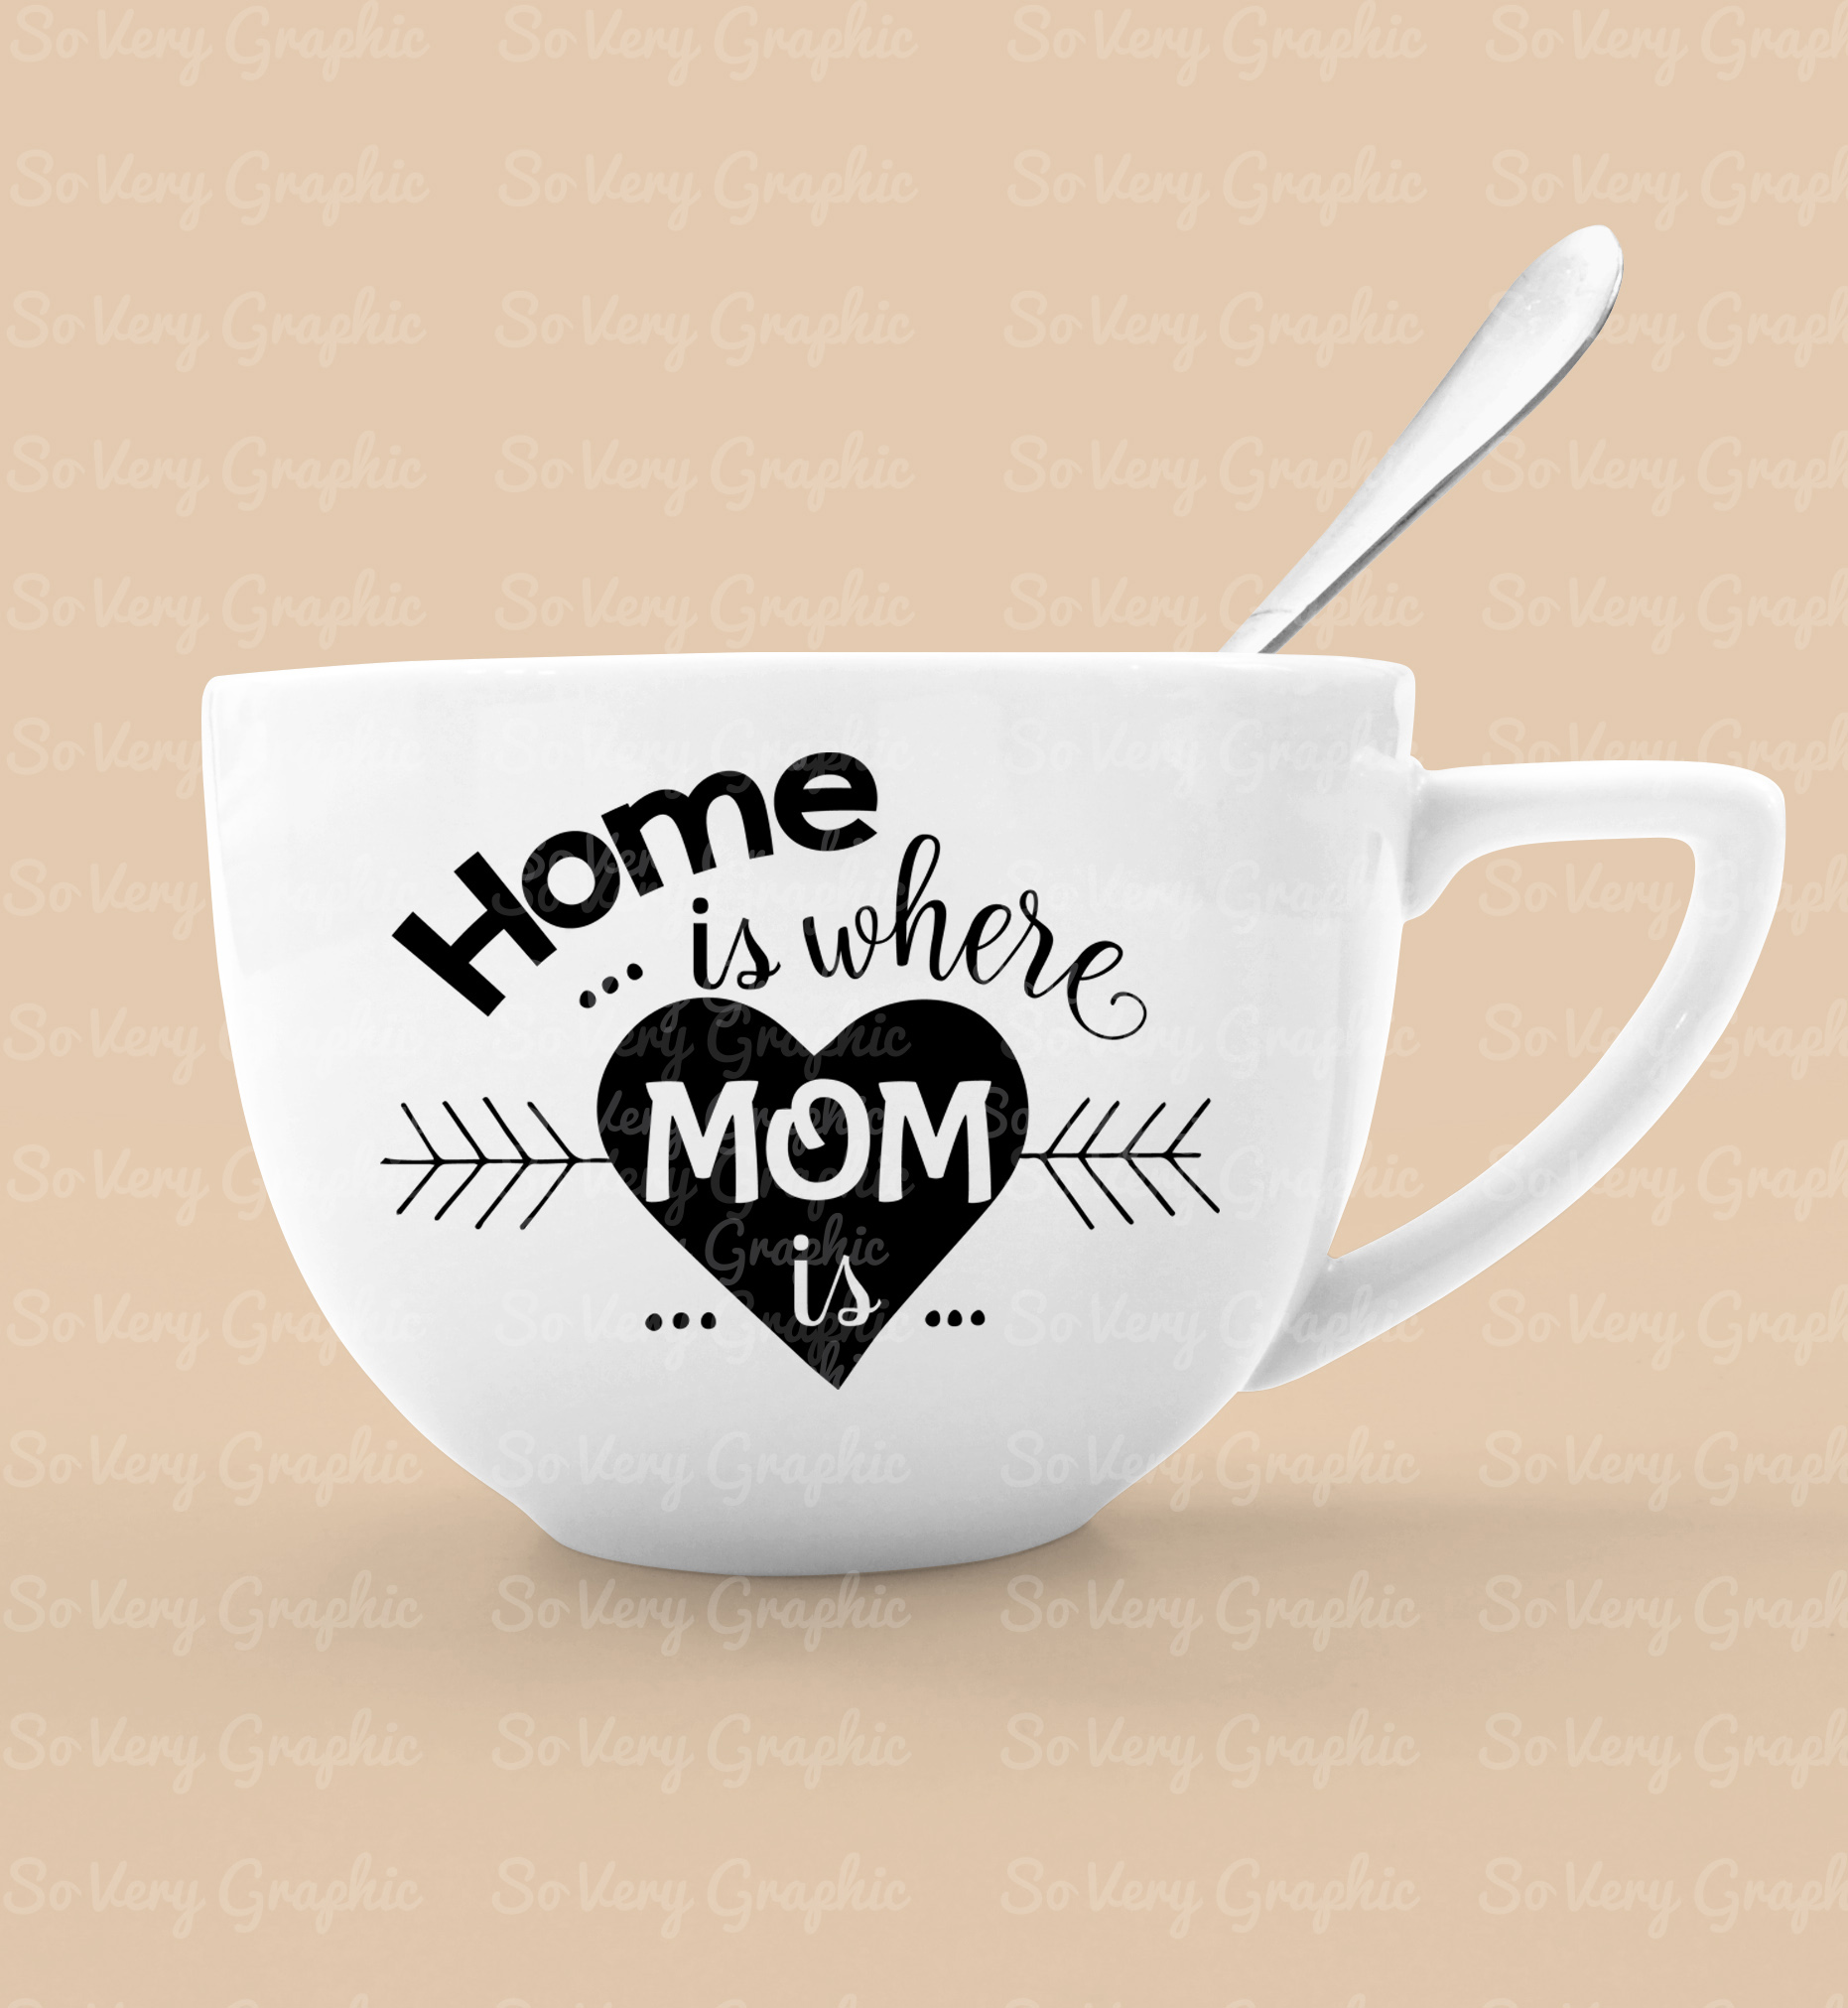 Home is Where Mom is | Cutting File & Printable | SVG | PNG example image 3